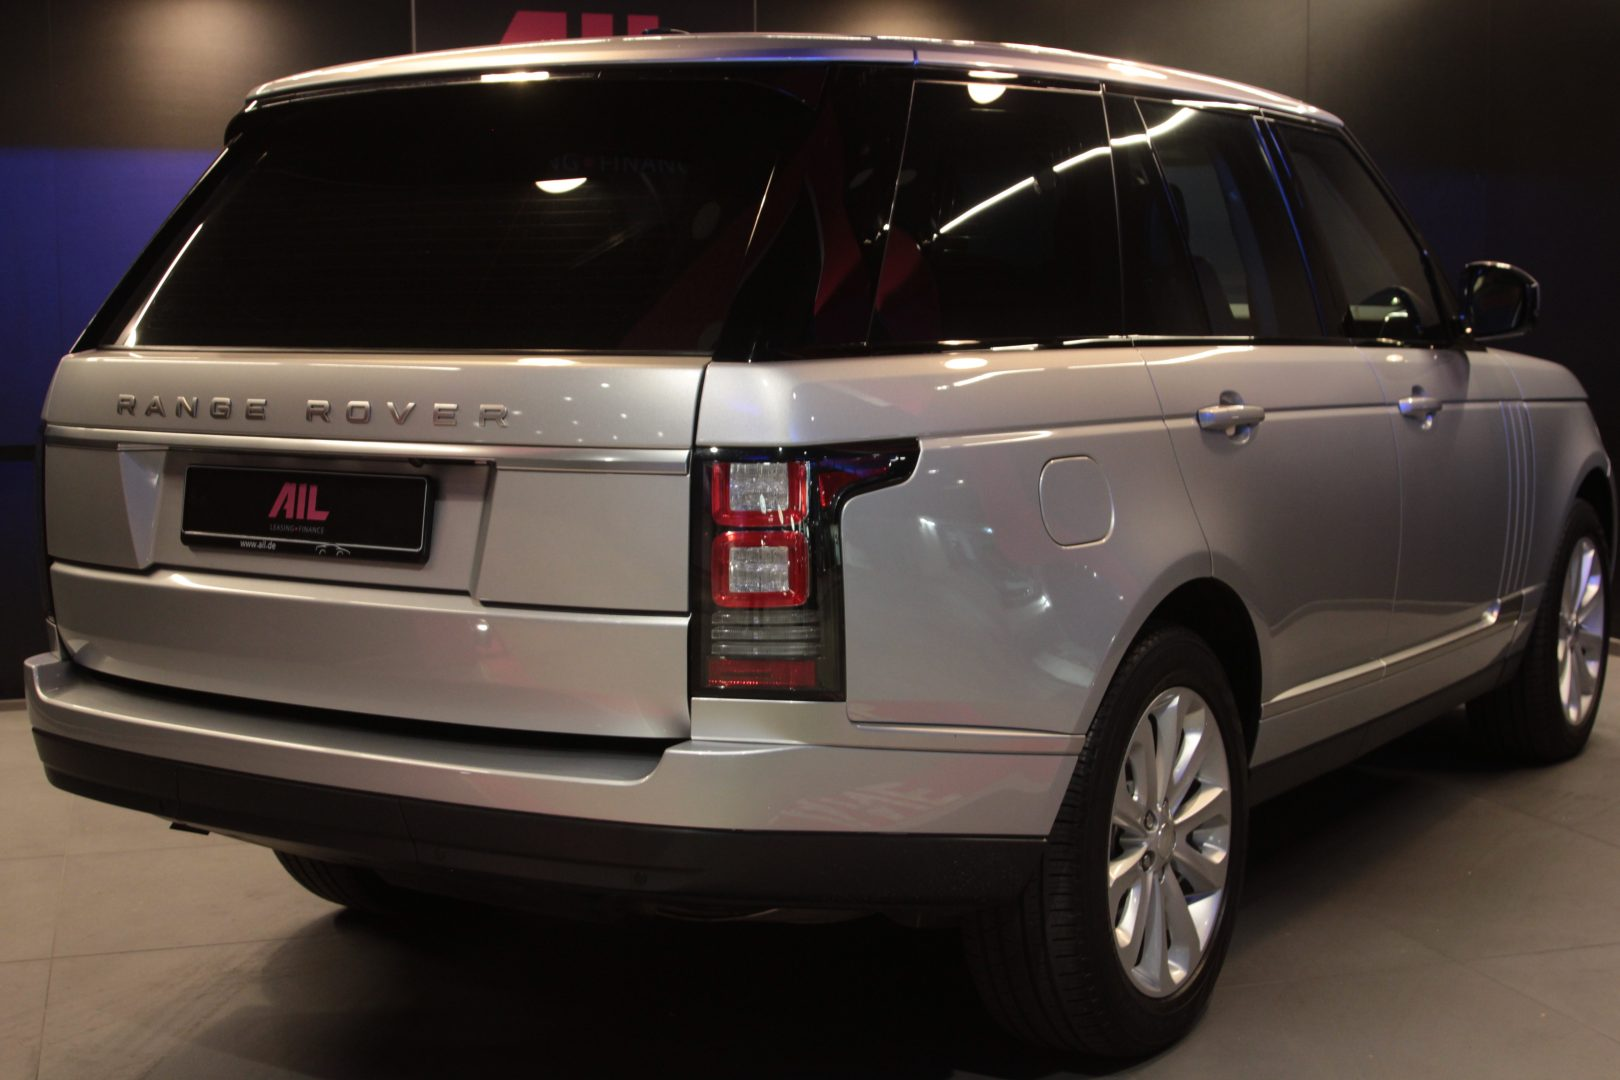 AIL Land Rover Range Rover Vogue 15